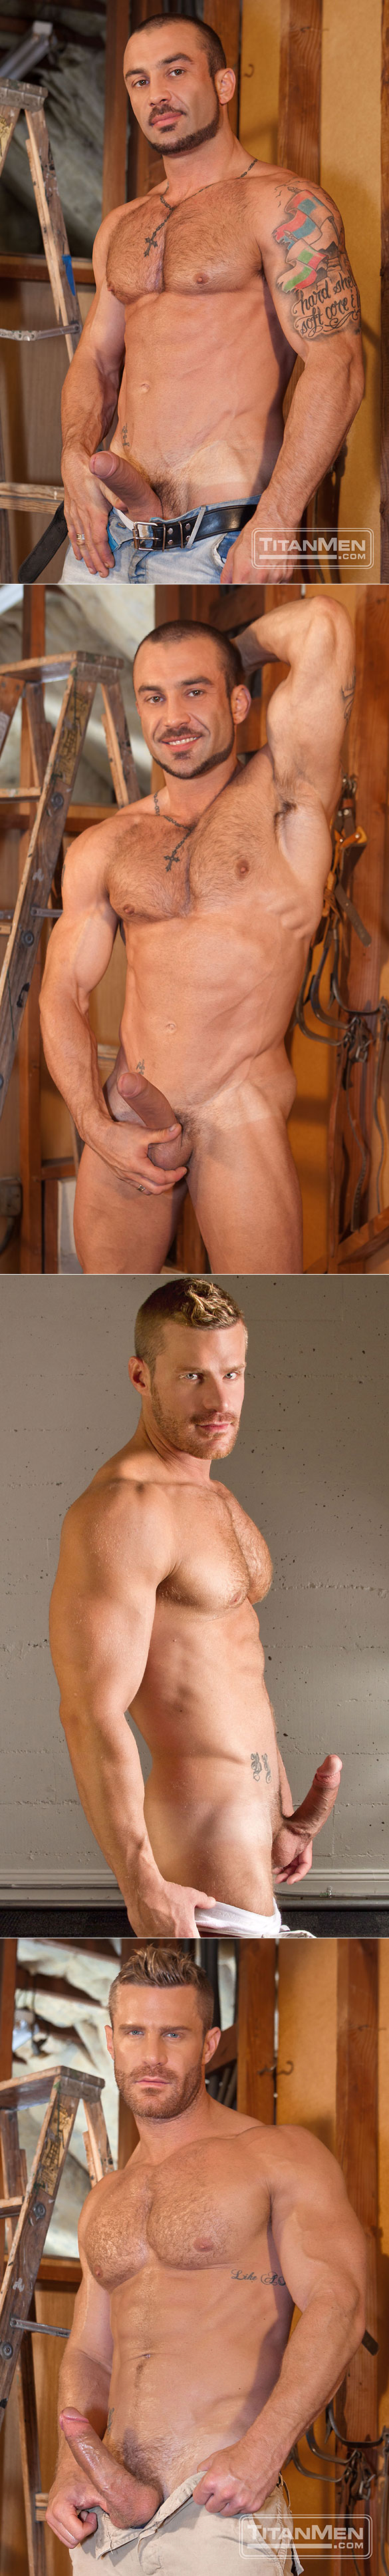 "TitanMen: Landon Conrad bottoms for George Ce in ""Hard at Work"""